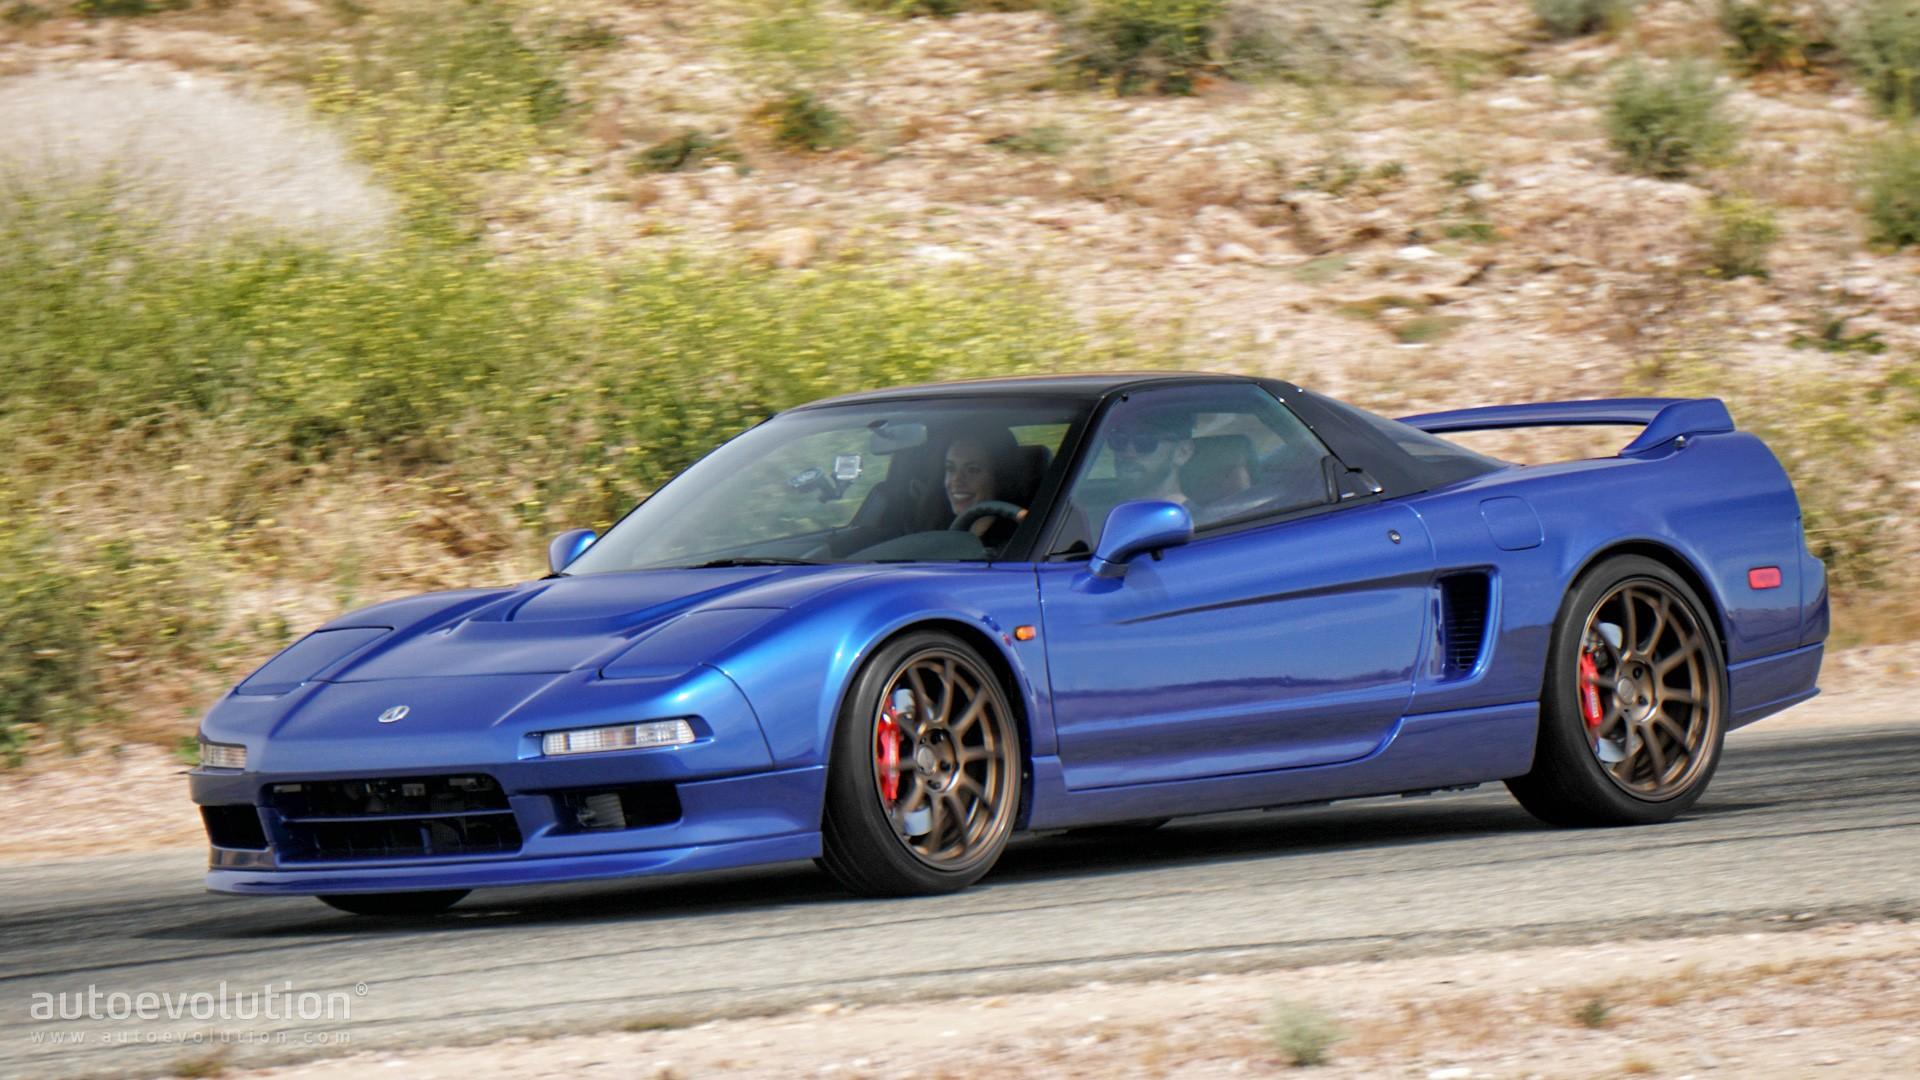 New Honda Nsx >> Clarion Builds Resurrects and Improves a 1991 Acura NSX - autoevolution